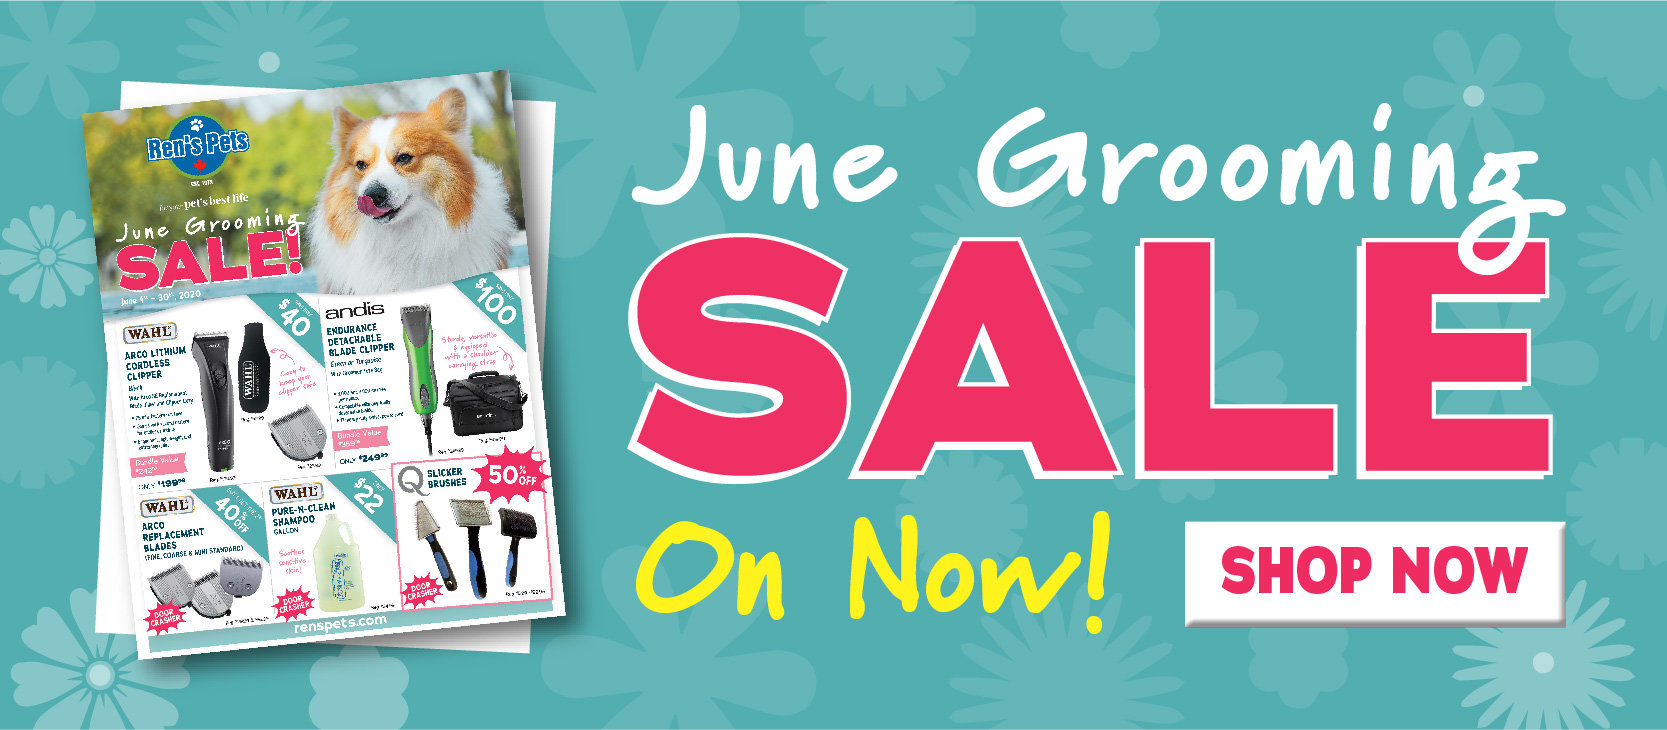 June Grooming Sale